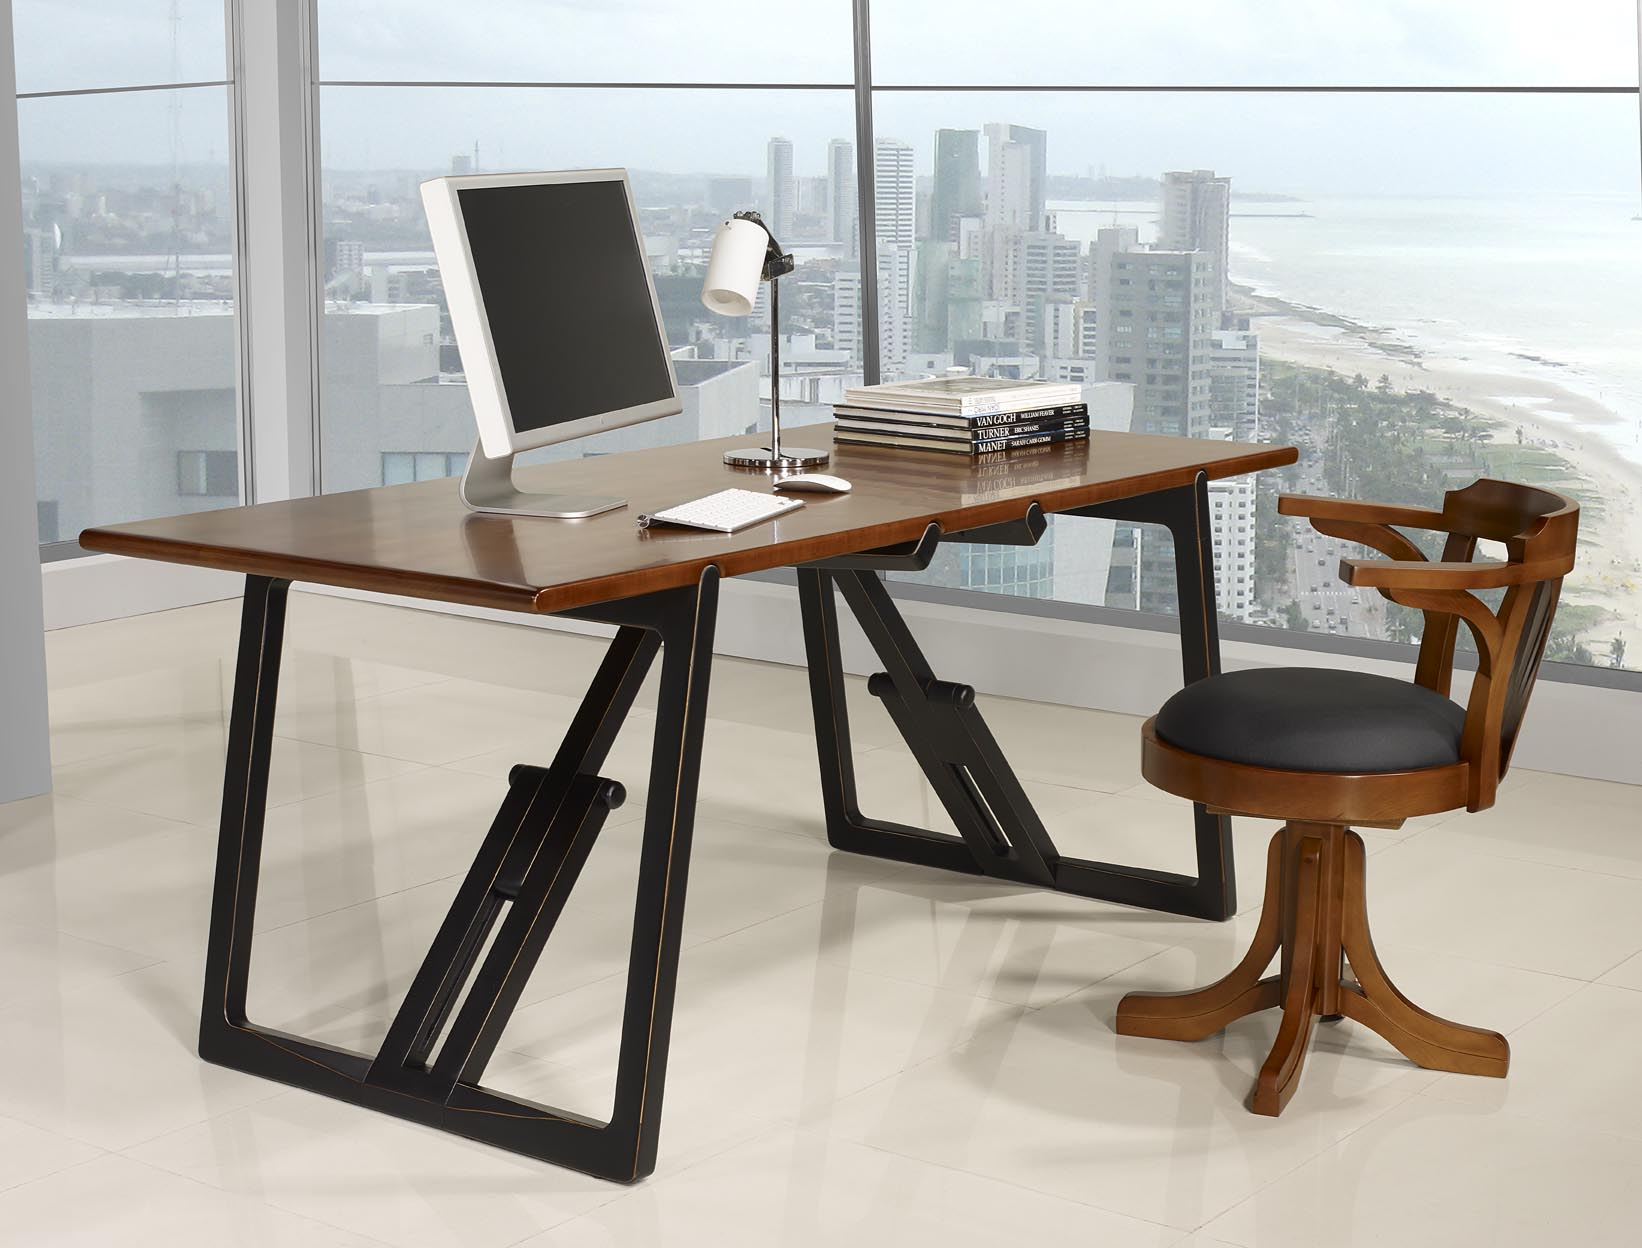 table de bureau en merisier massif de ligne contemporaine pi tement noir us et patin meuble. Black Bedroom Furniture Sets. Home Design Ideas